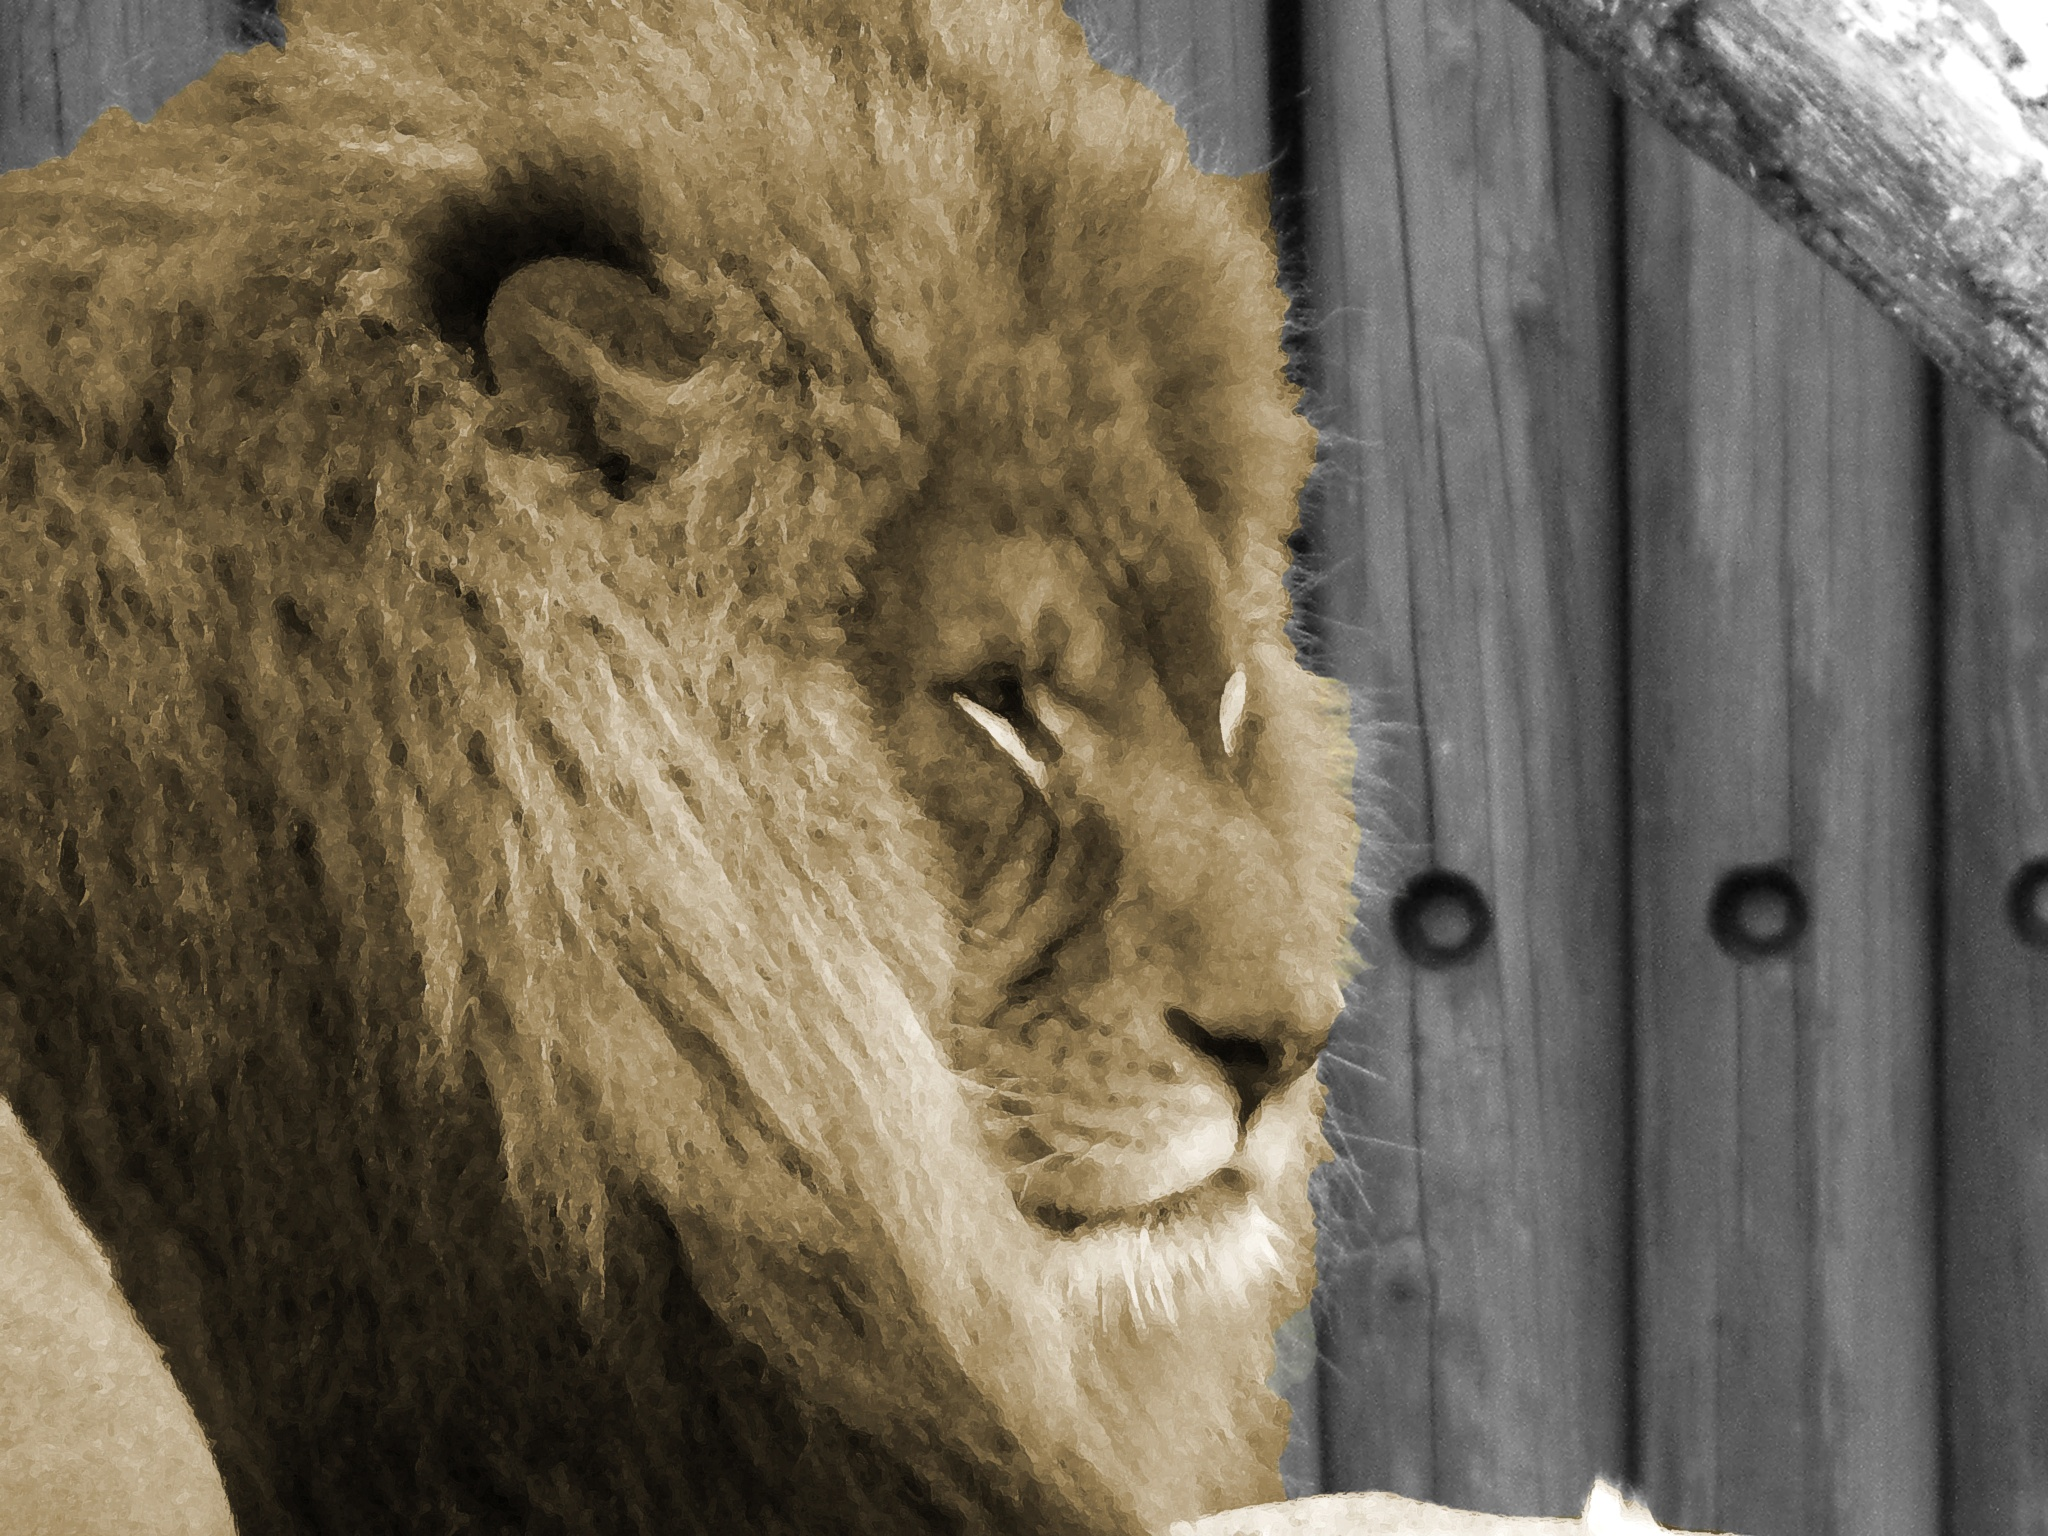 King in Sepia by Phillip W. Strunk